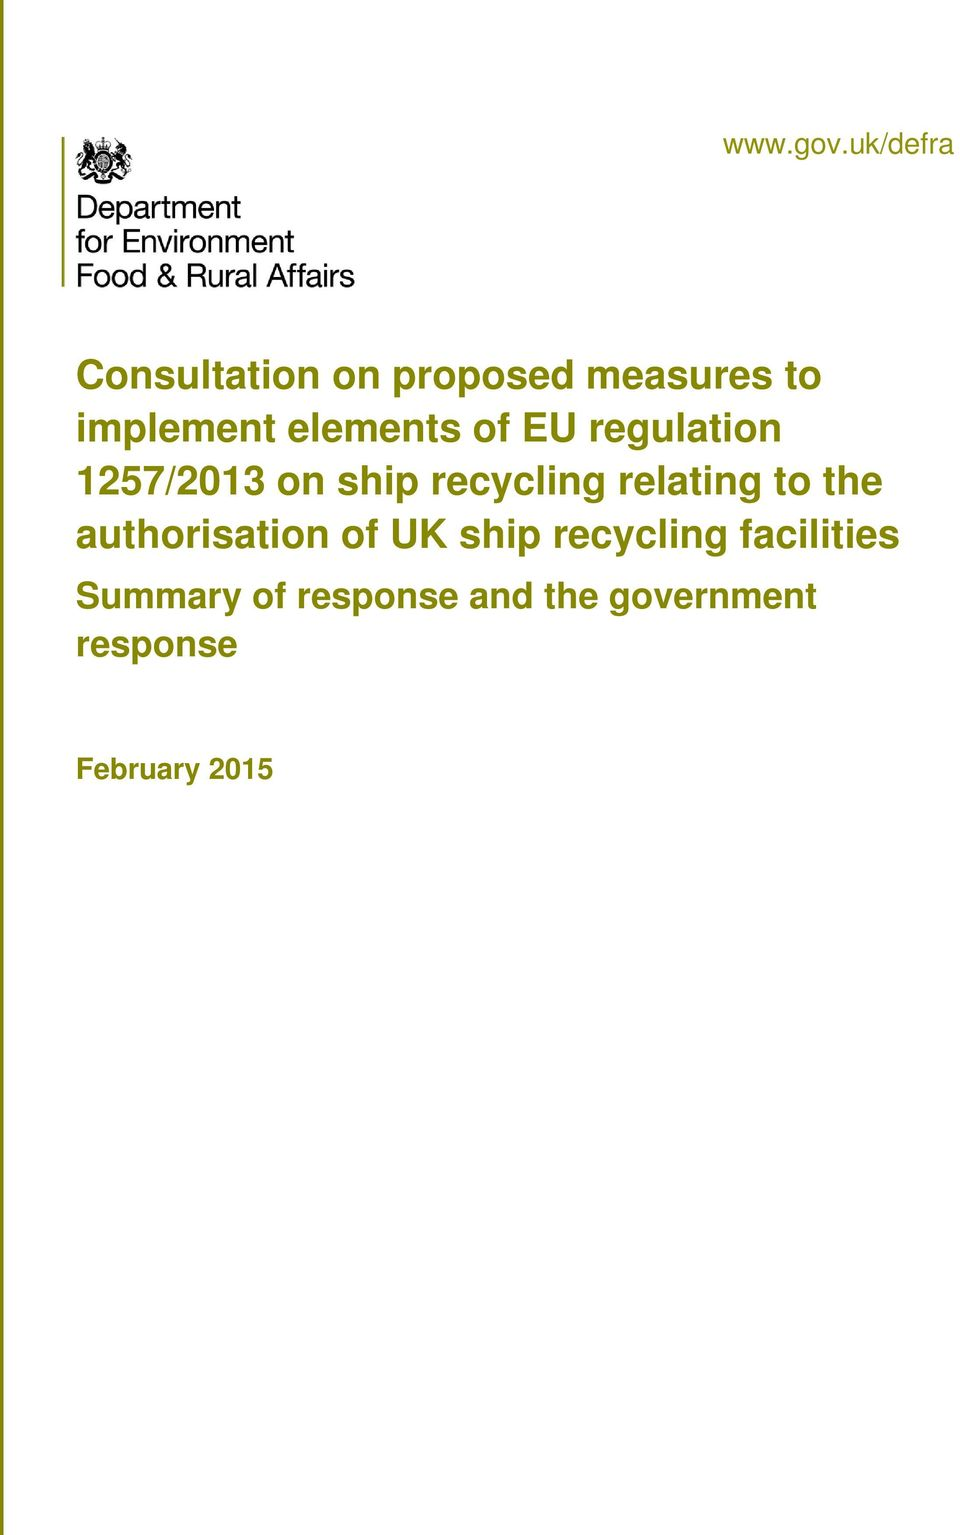 elements of EU regulation 1257/2013 on ship recycling